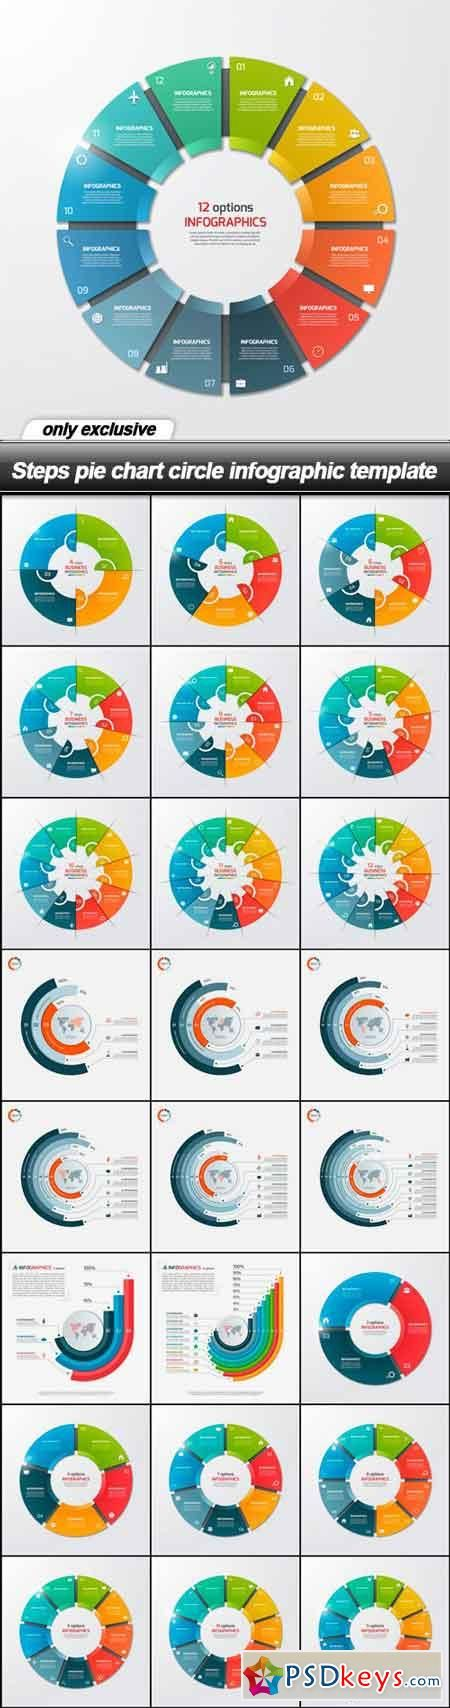 Steps pie chart circle infographic template - 25 EPS